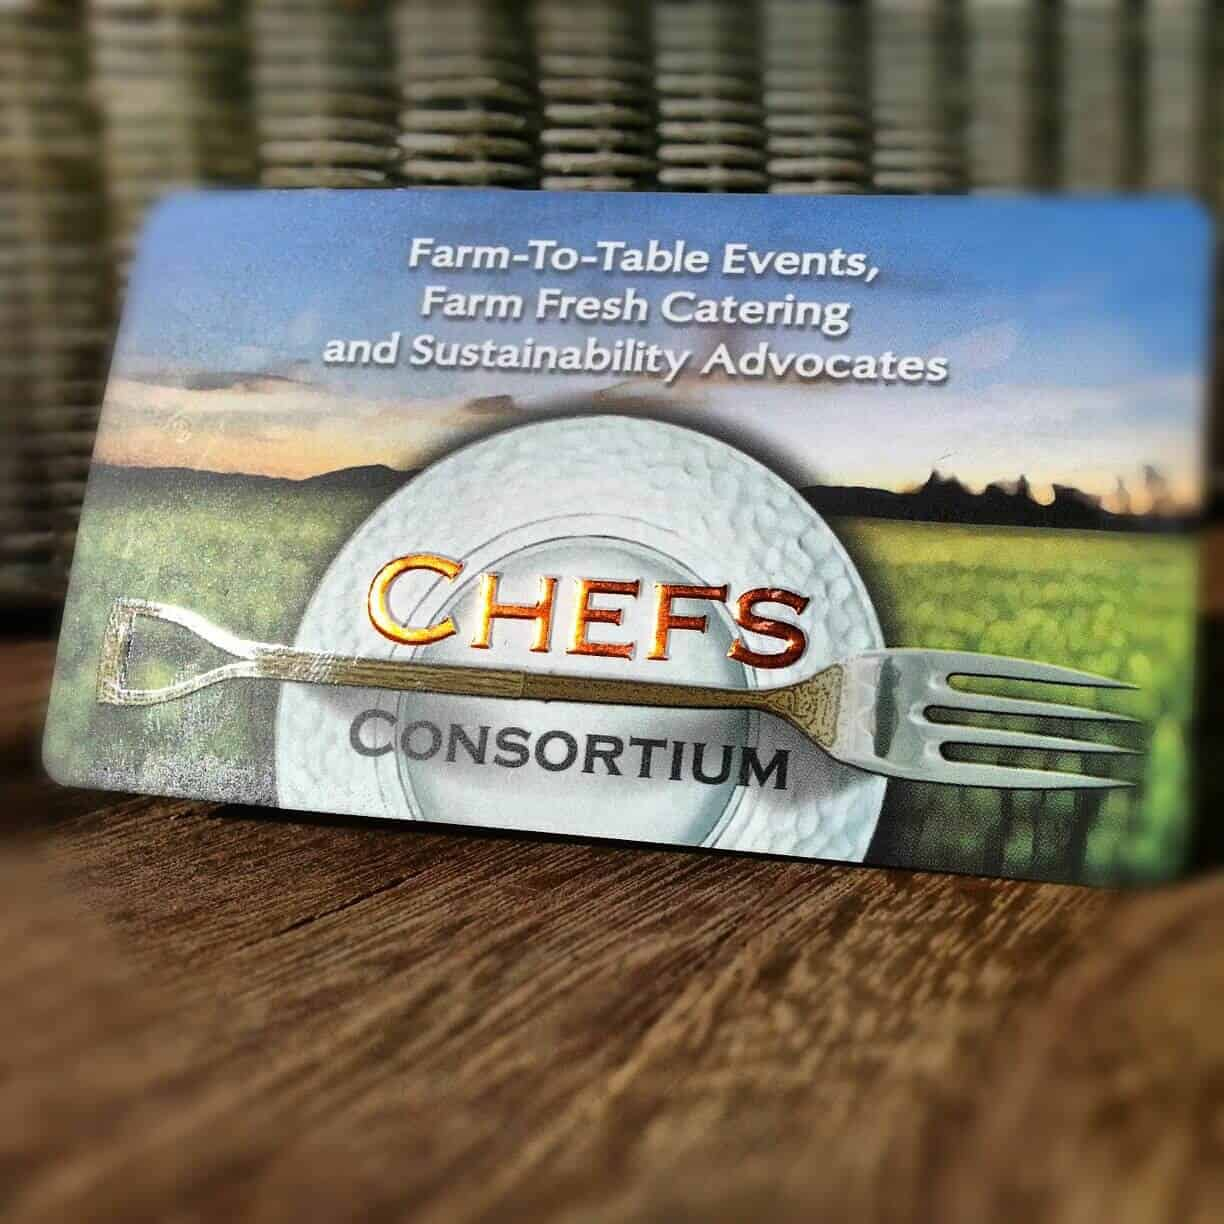 Branding For Nonprofit Organizations - Chefs Consortium Business Card Design